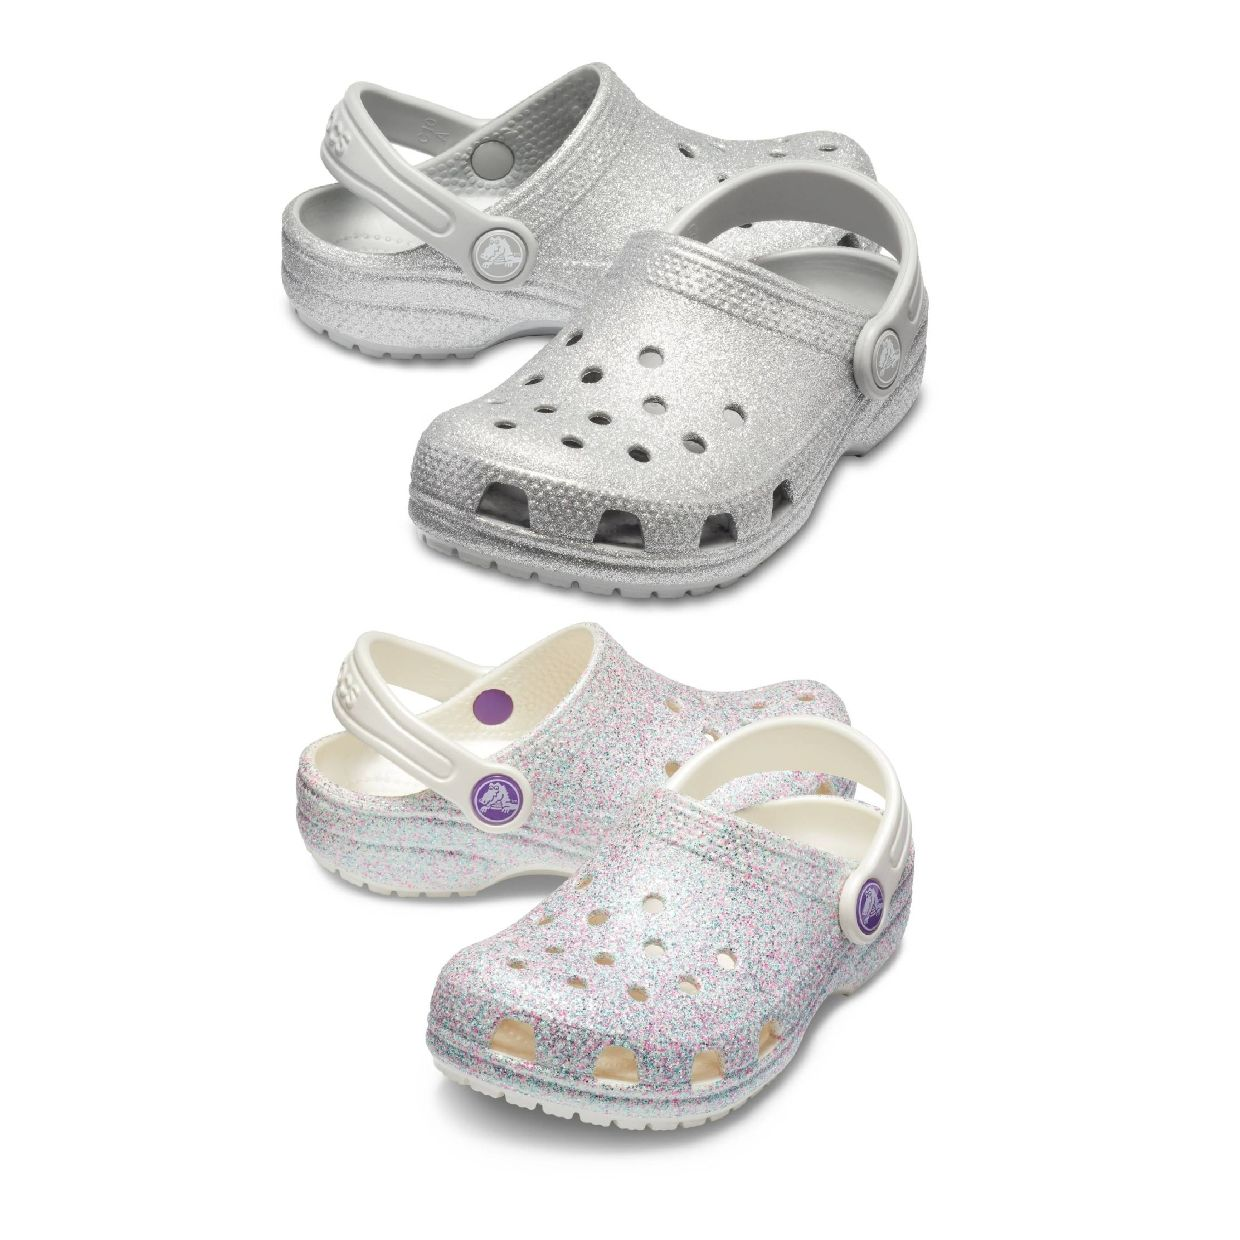 Crocs Classic Glitter Clog Kids Clogs Hausschuhe Synthetik Kinder Schuhe CO